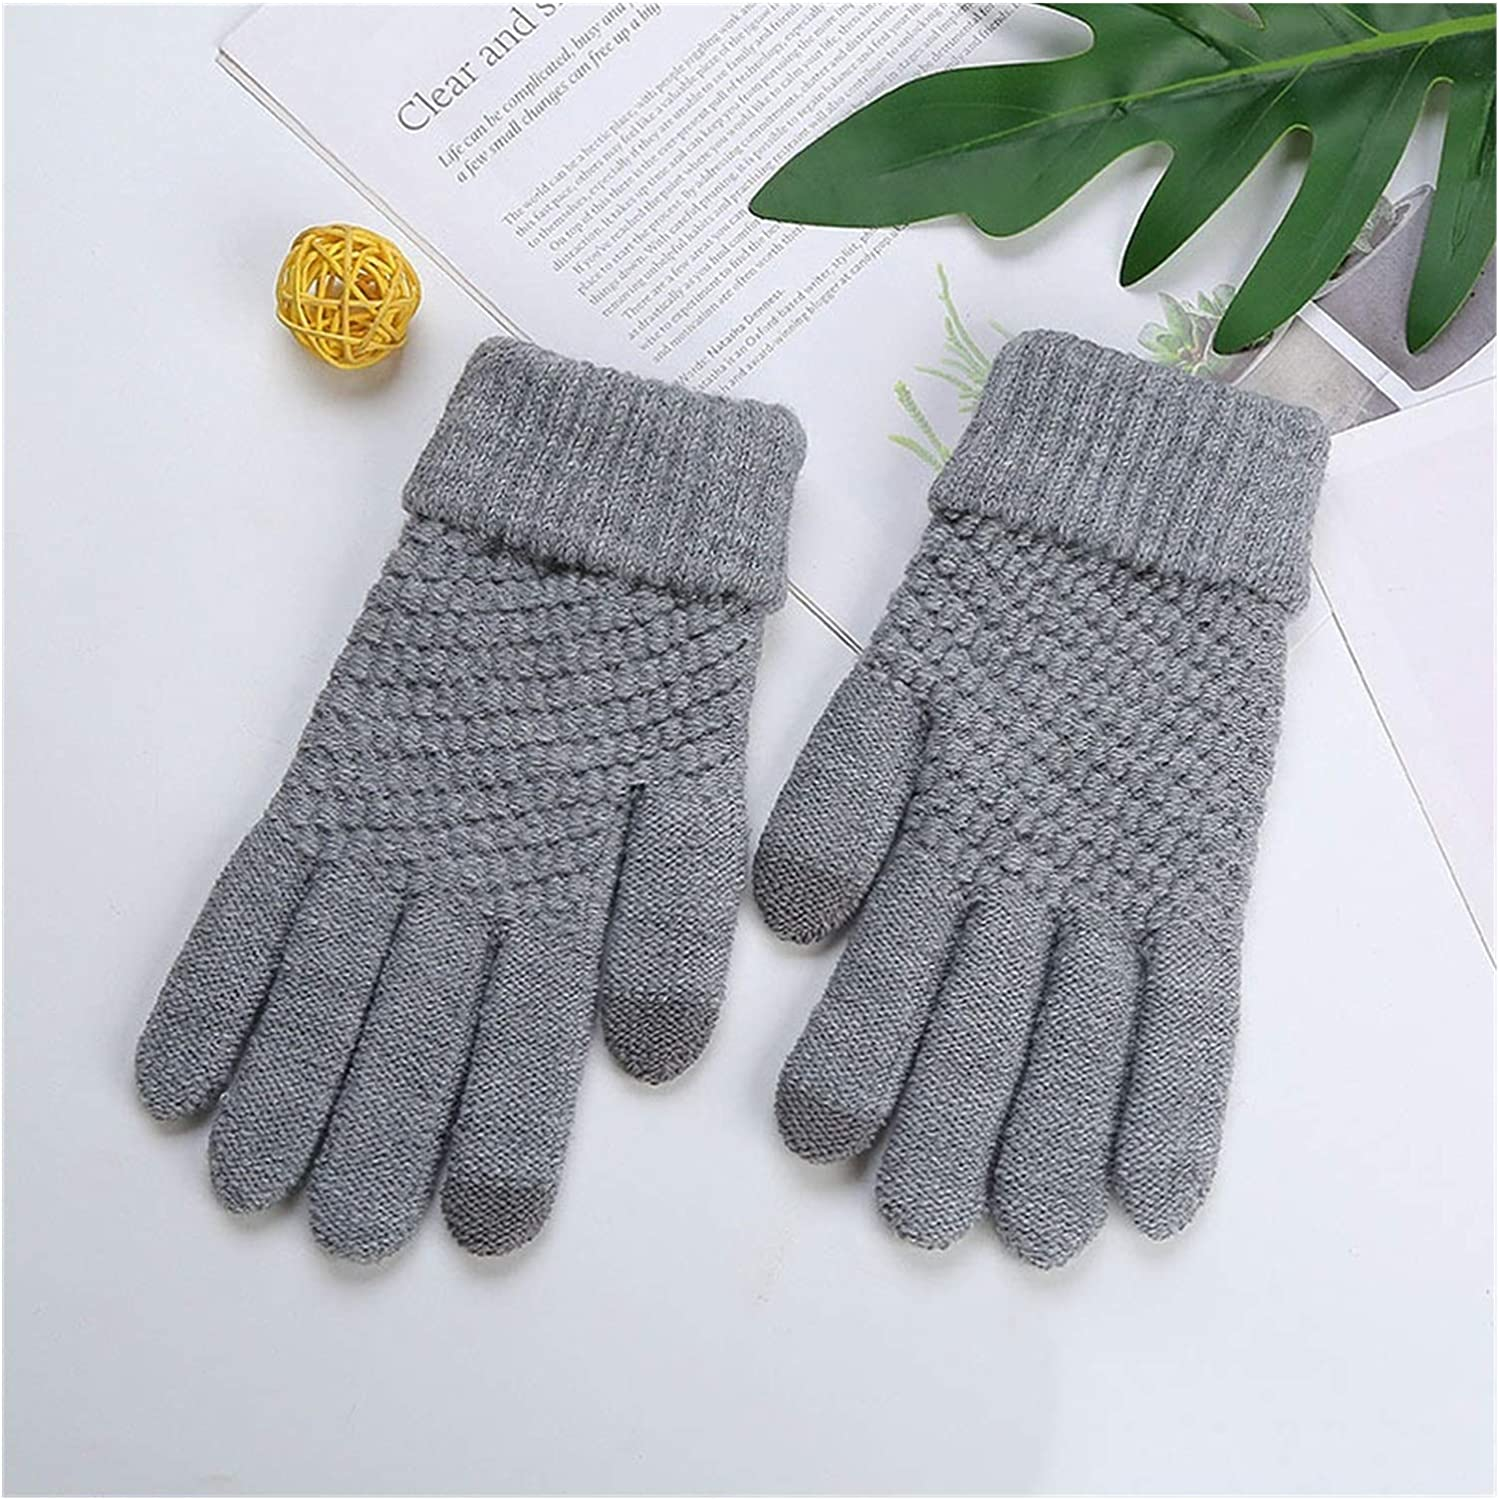 JBIVWW Fashion Winter Women Knitted Gloves Color Touch Screen Gloves Exquisite Warmth (Color : ST001 8, Gloves Size : One Size)